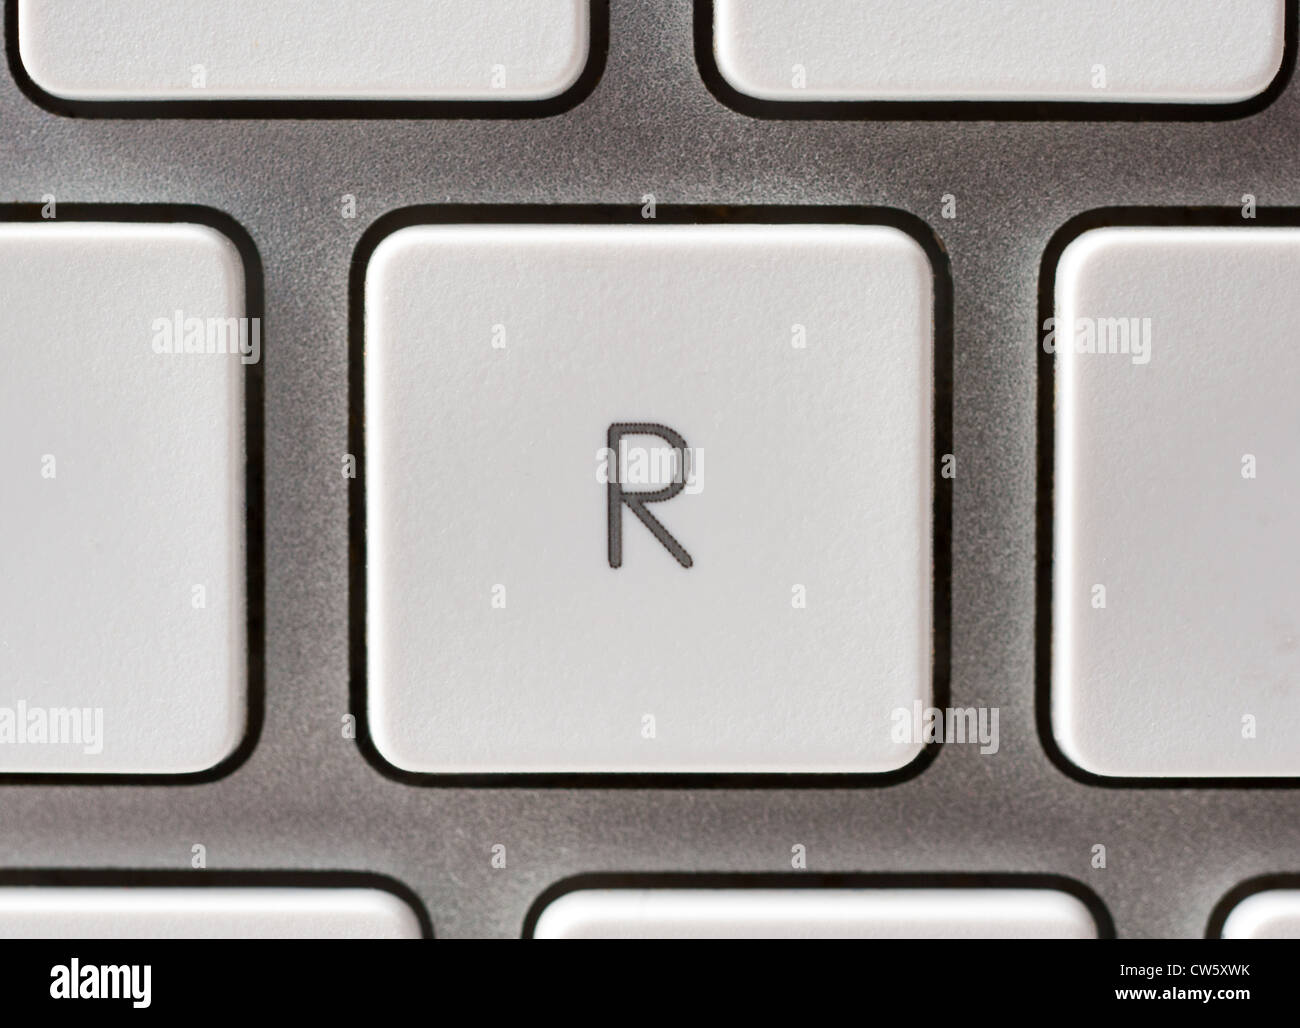 Letter R on an Apple keyboard - Stock Image